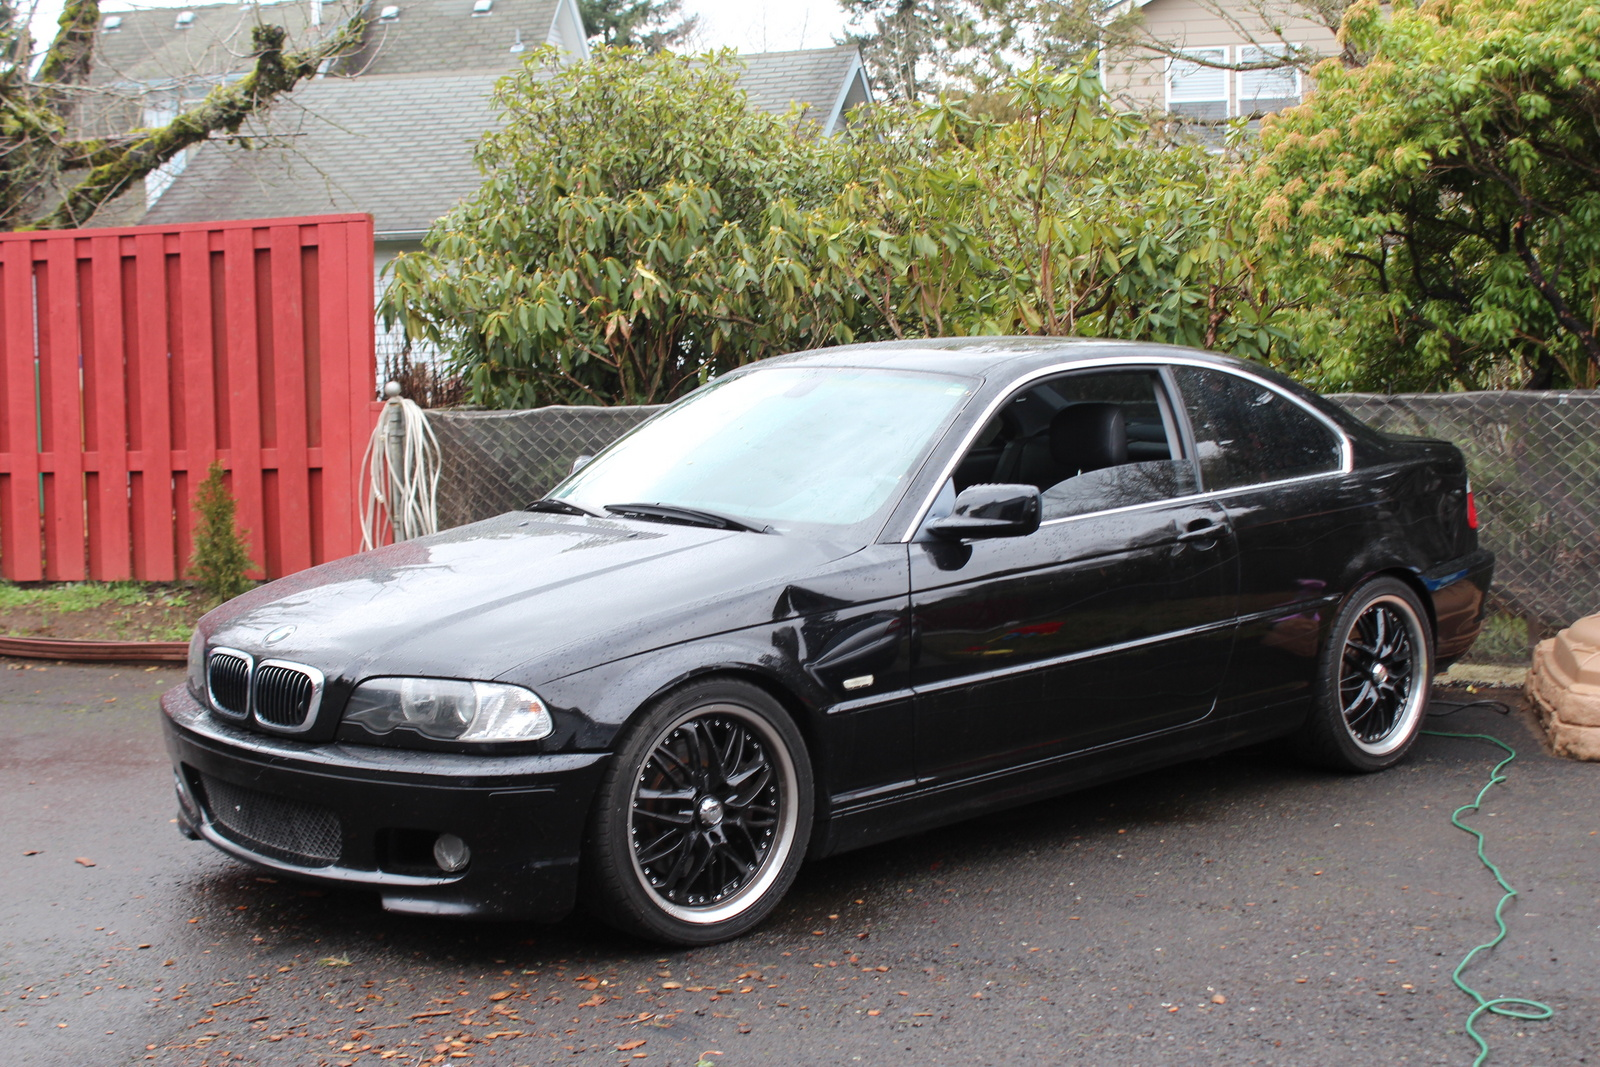 BMW 3 series 330Ci 2002 photo - 1